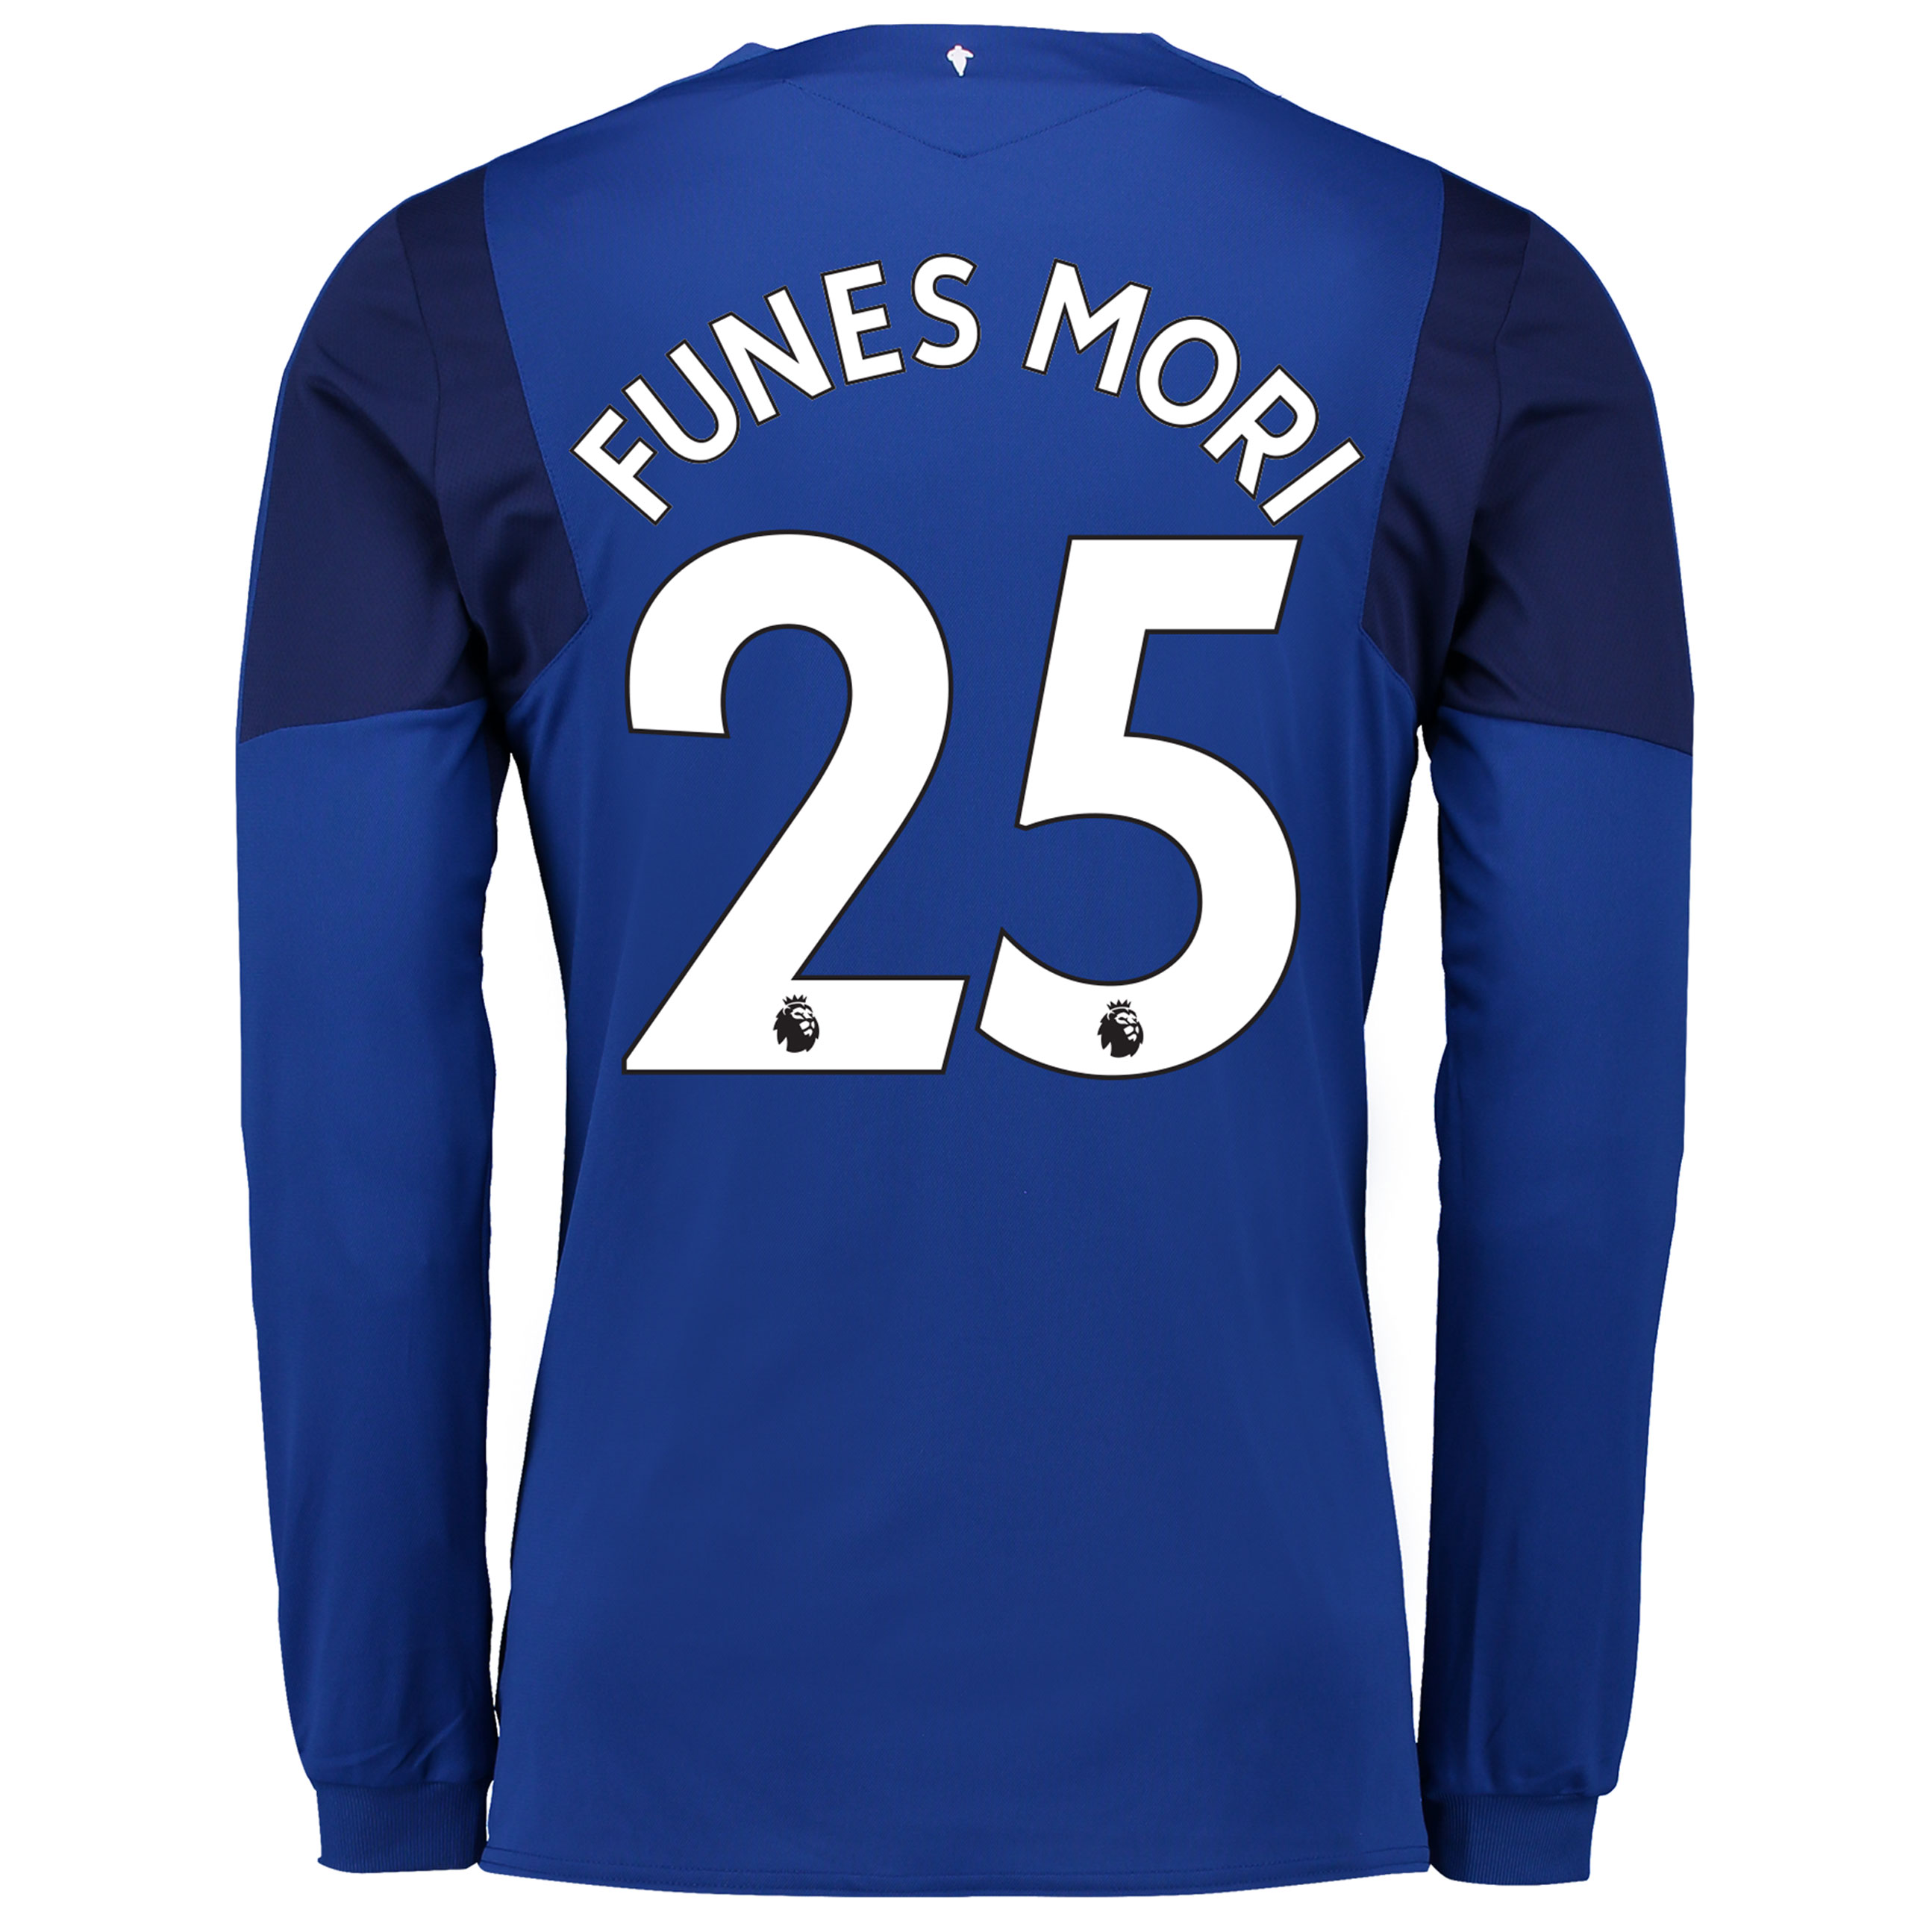 Everton Home Shirt 2017/18 - Junior - Long Sleeved with Funes Mori 25